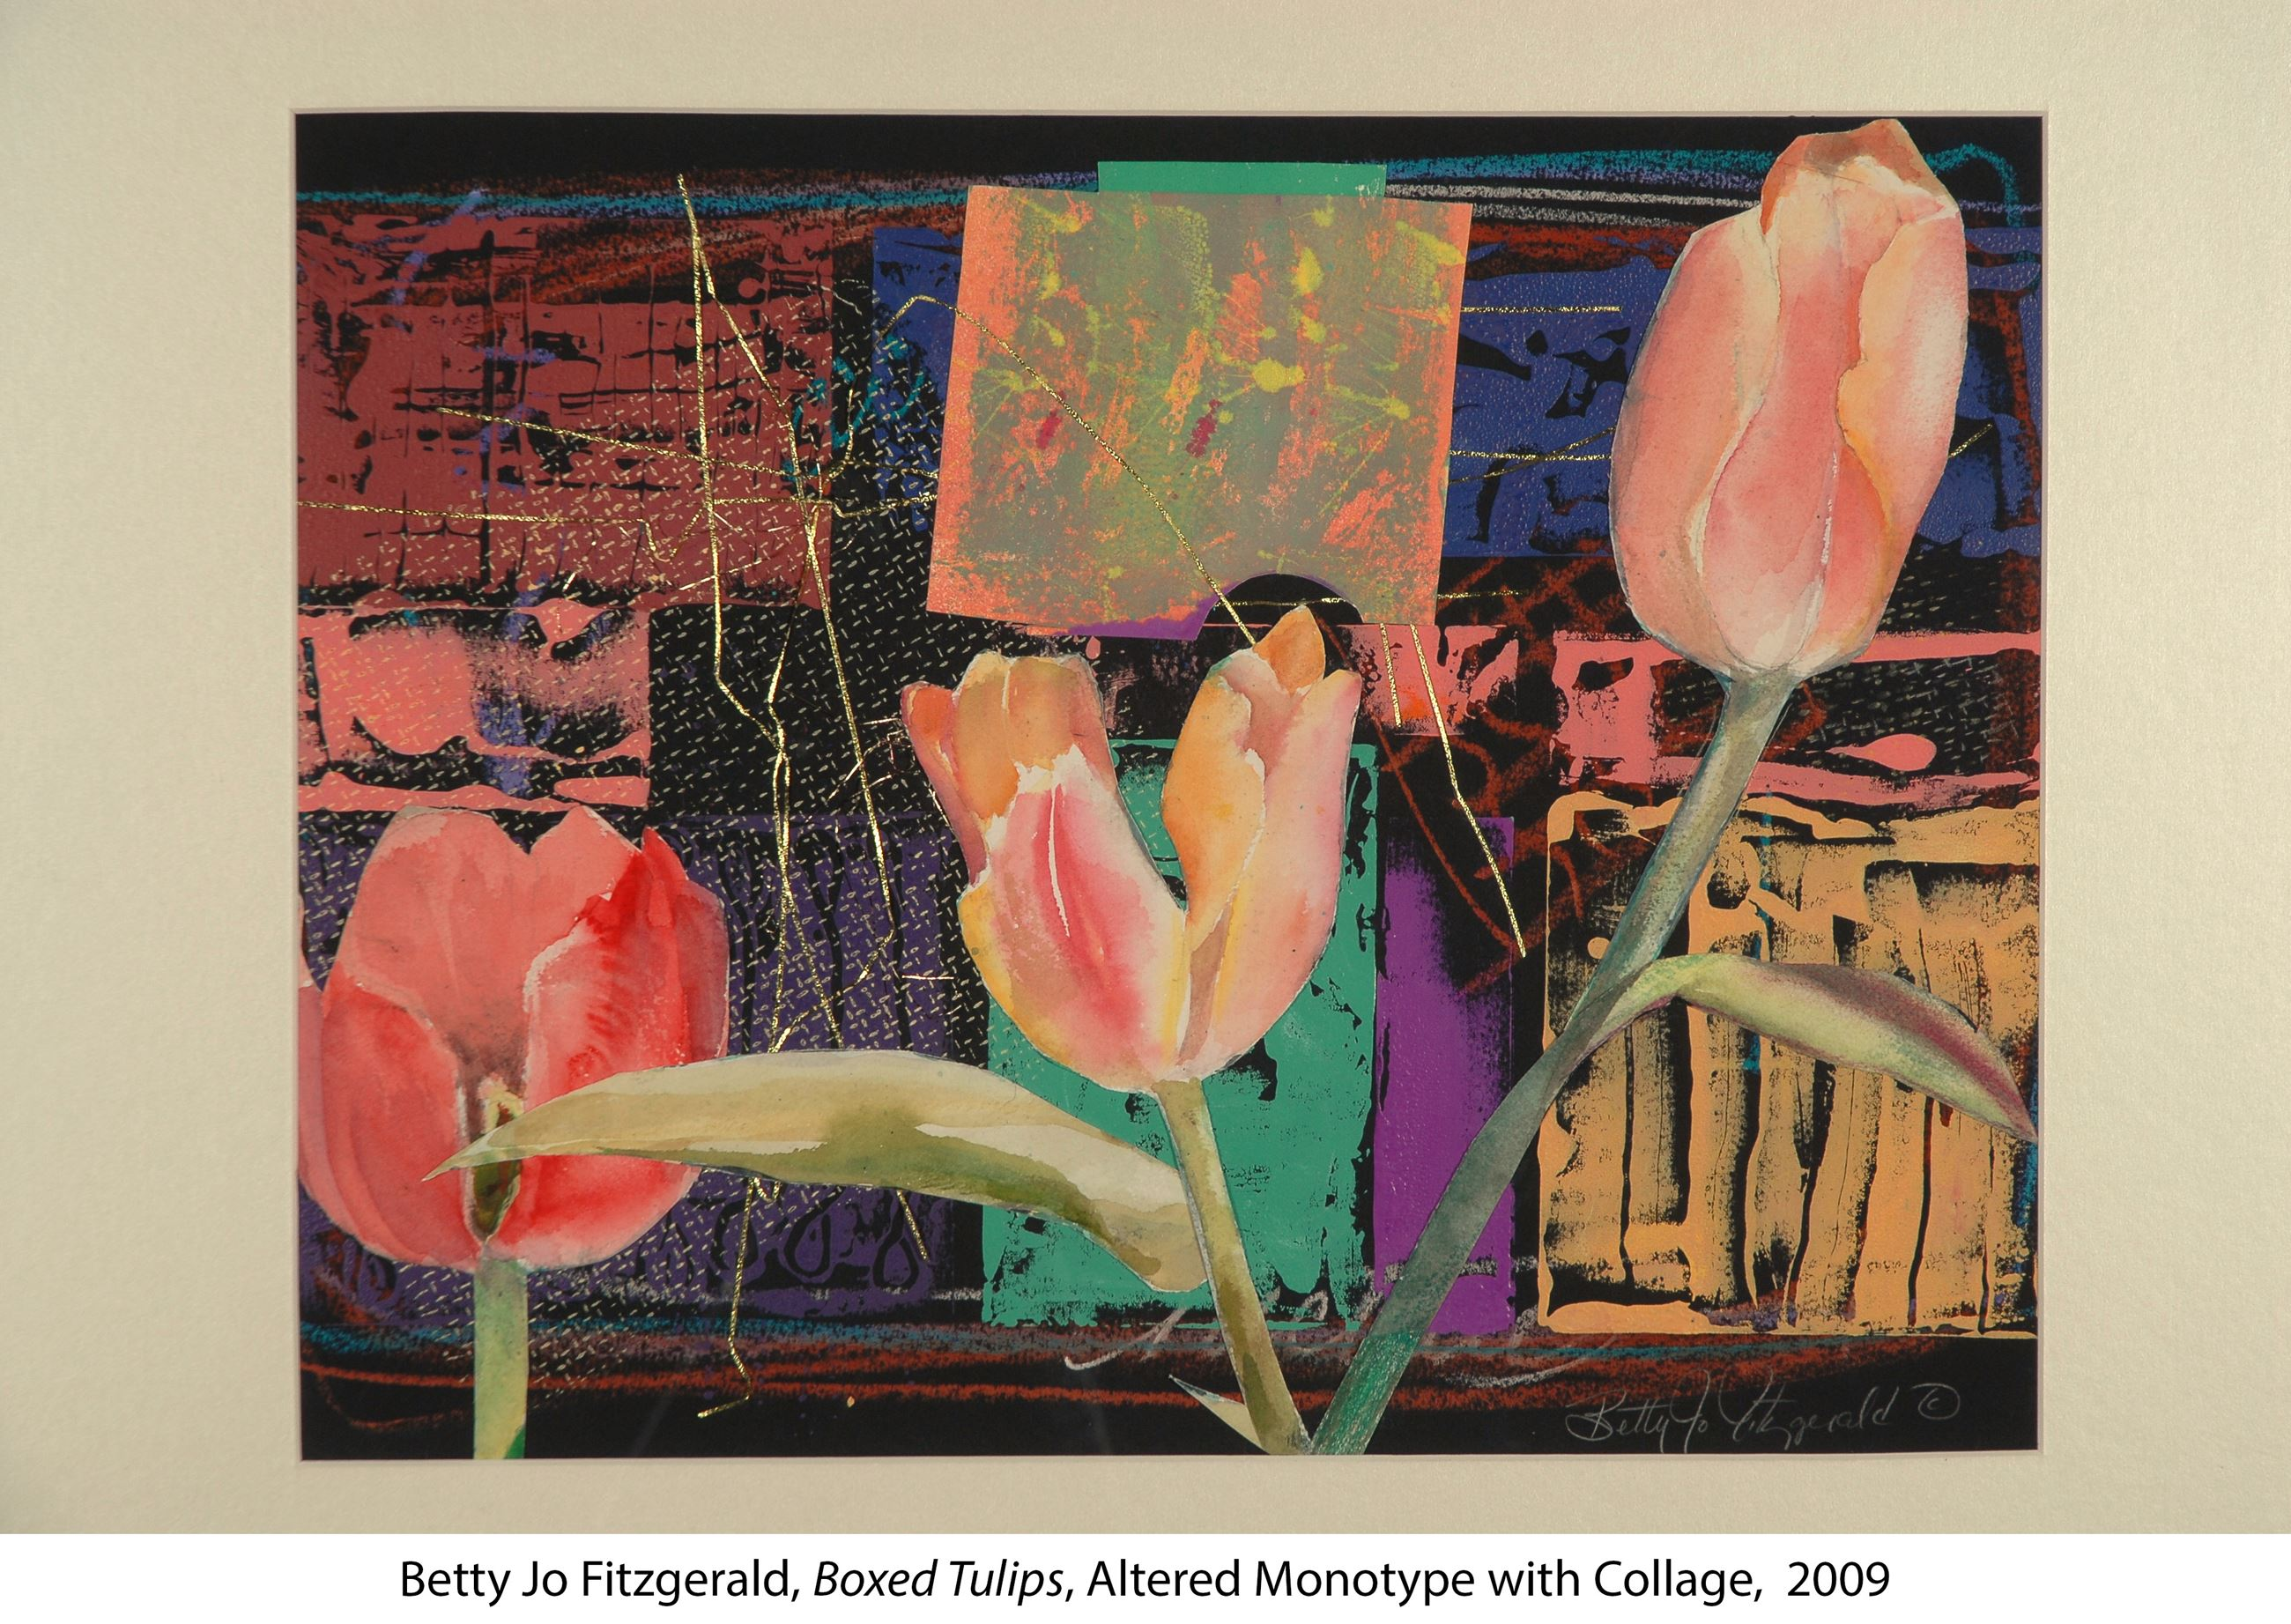 Monotype collage of boxed tulips